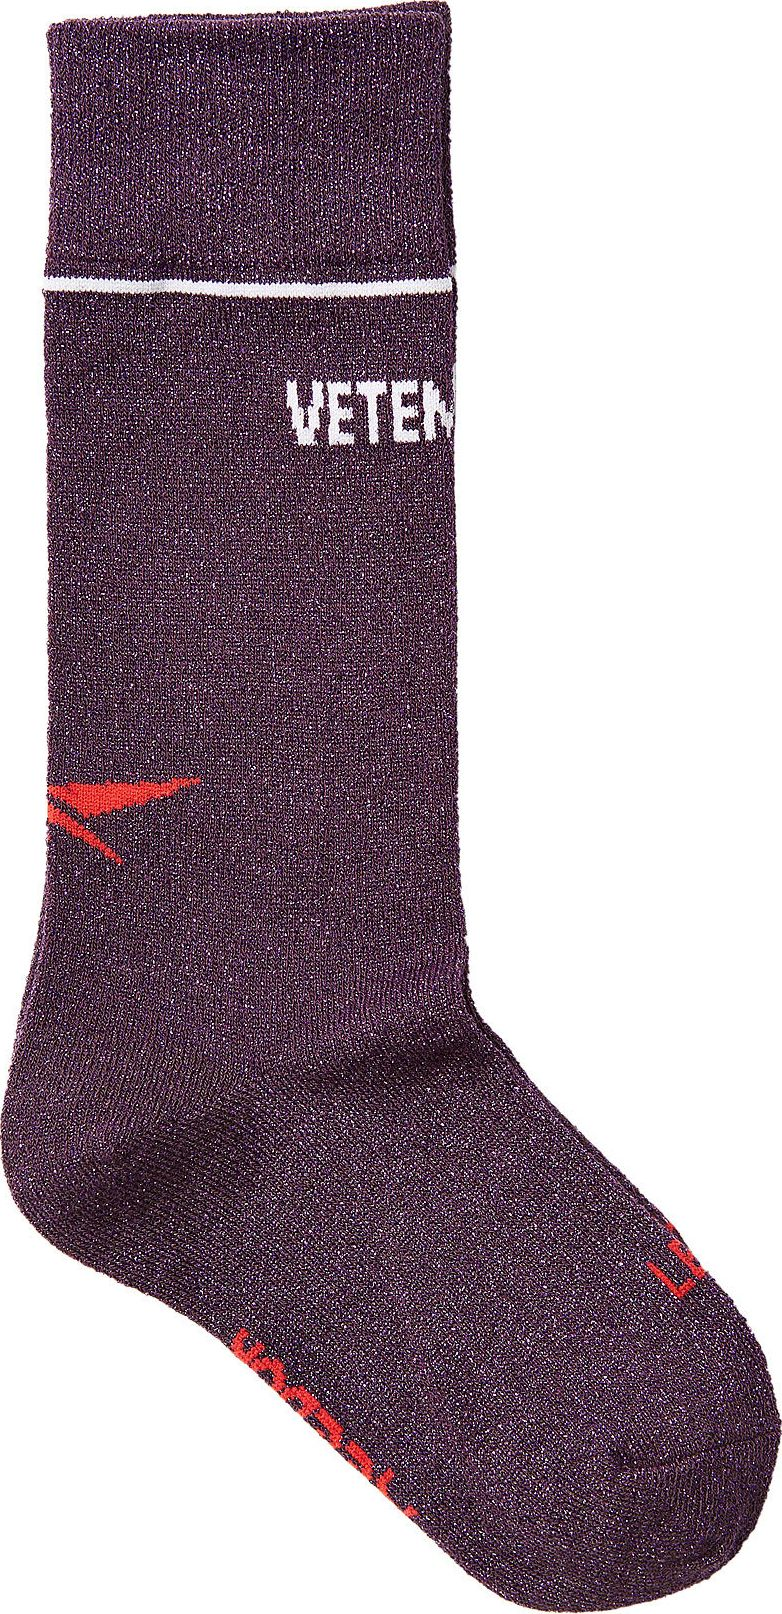 Vetements - X Reebok Printed Socks with Metallic Thread